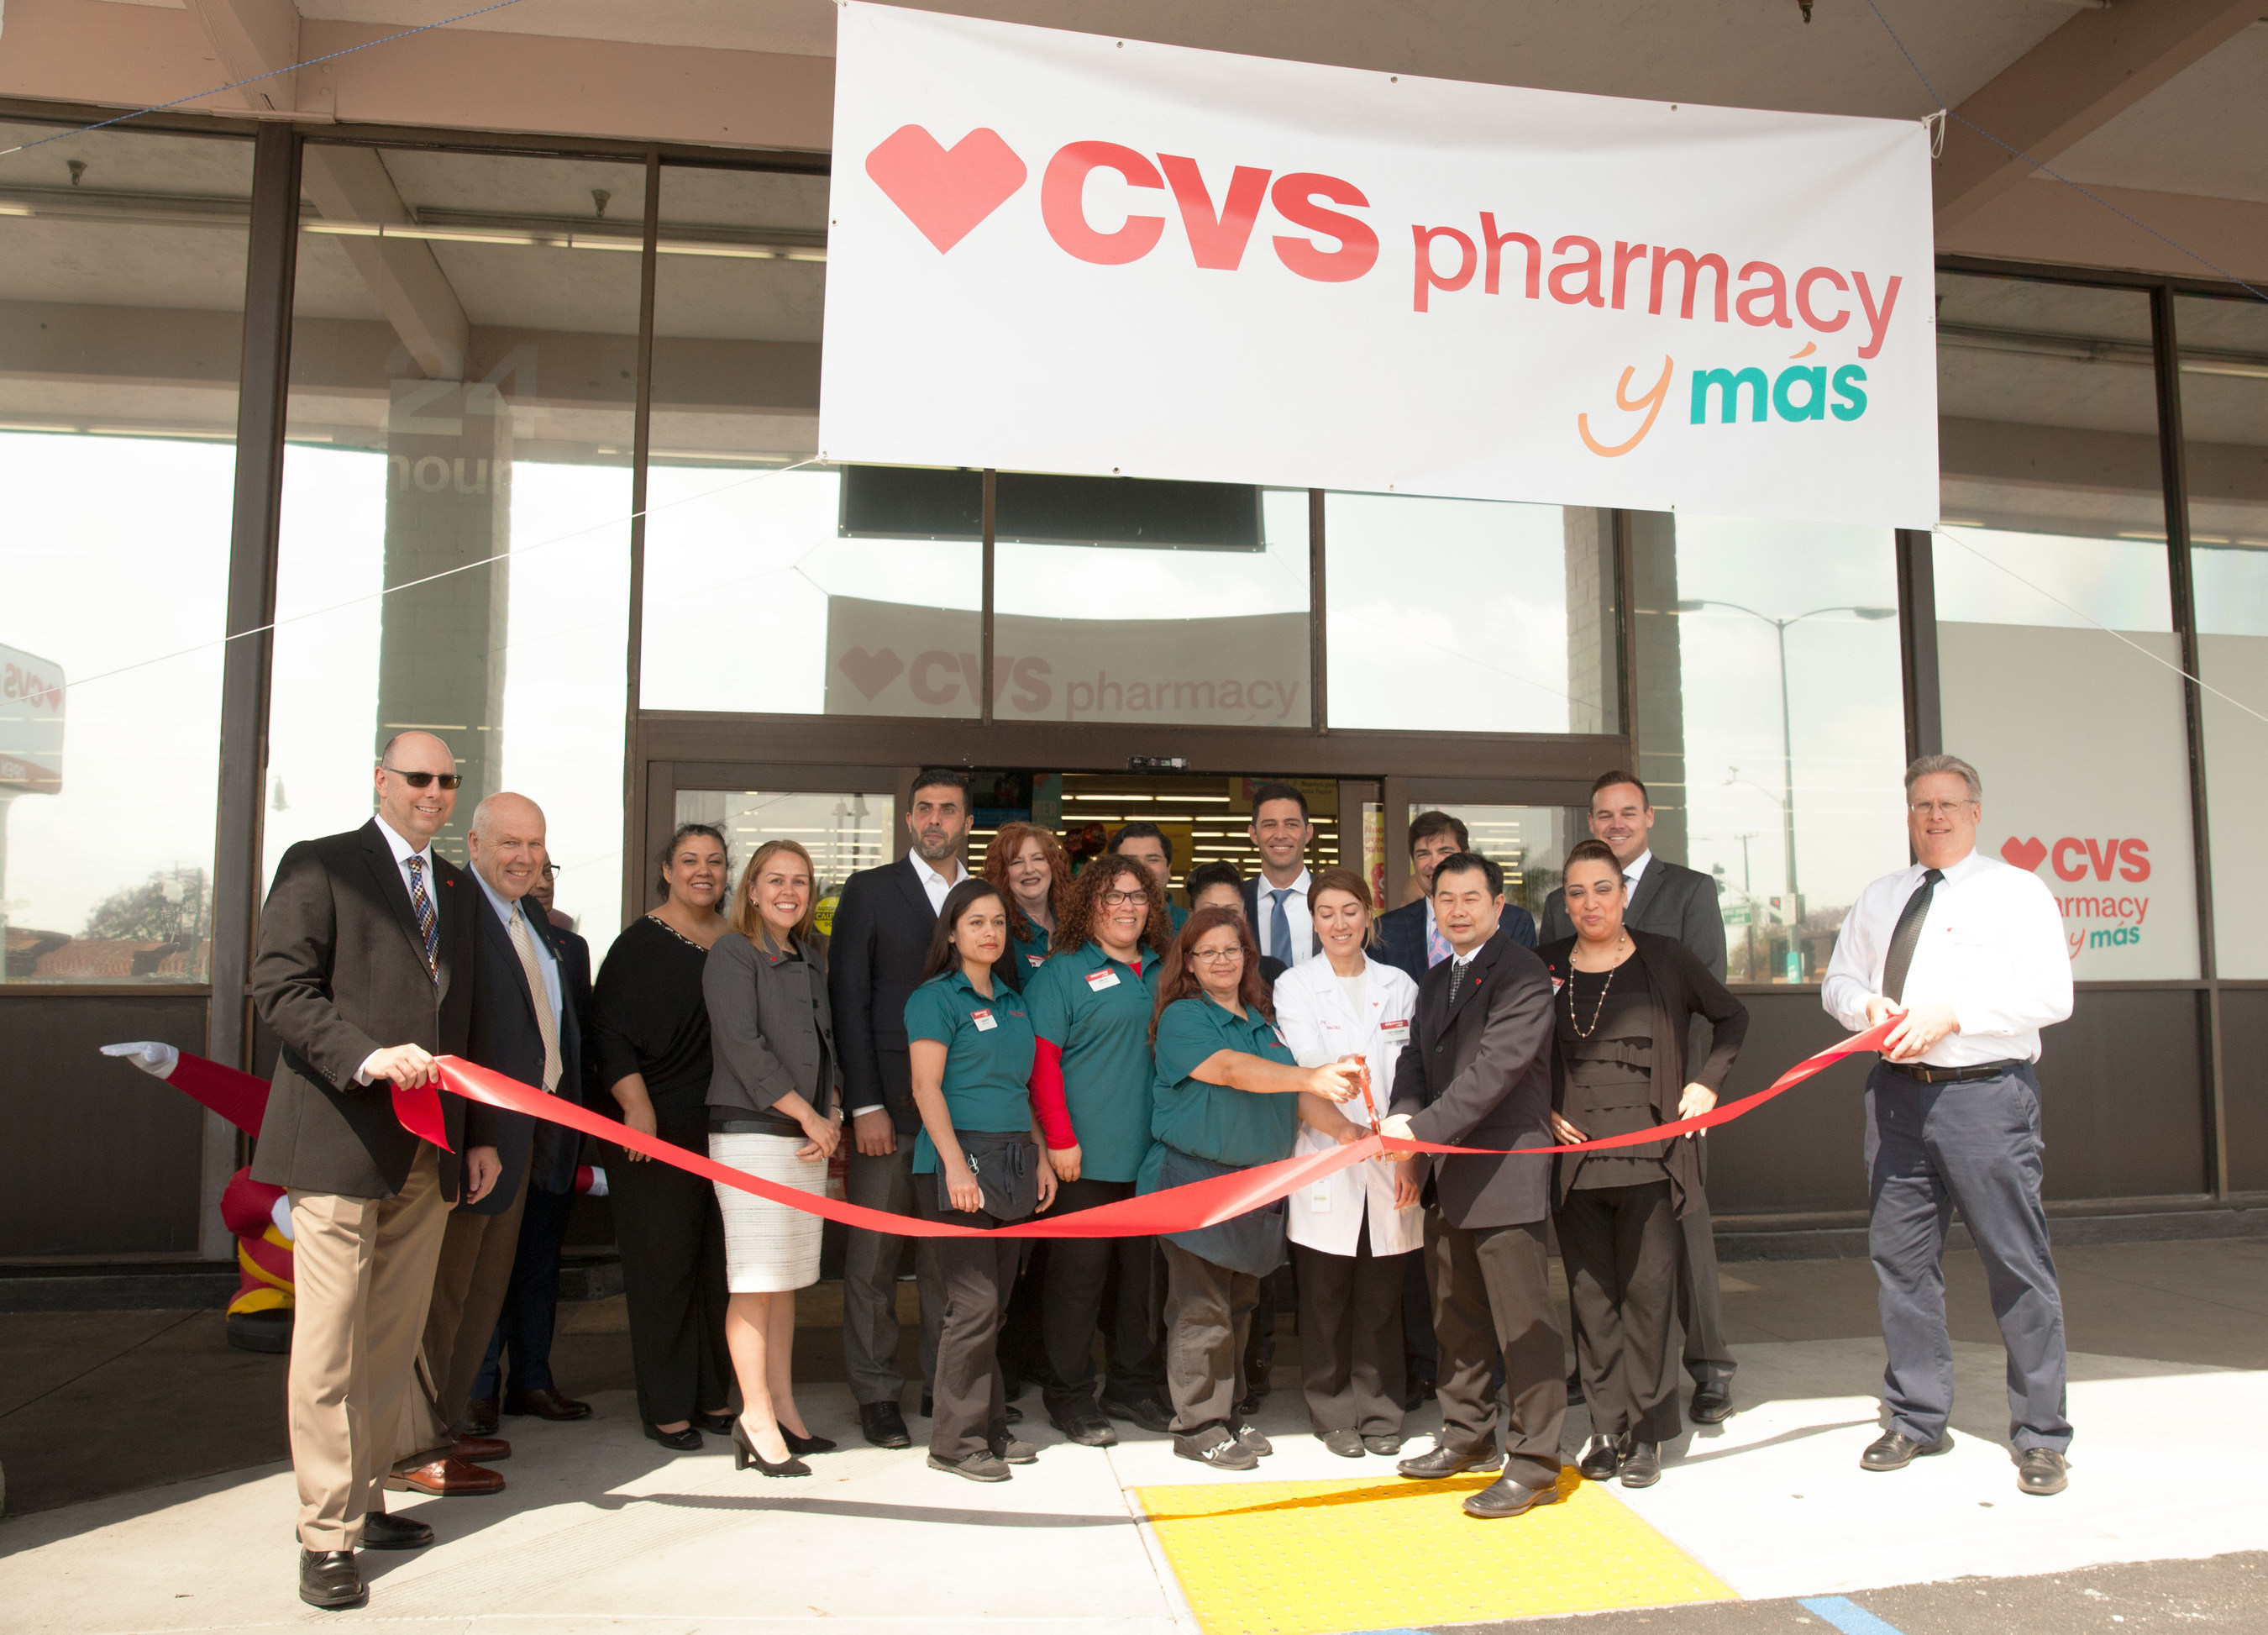 Cvs Pharmacy Y Más A New Personalized Shopping Experience For The